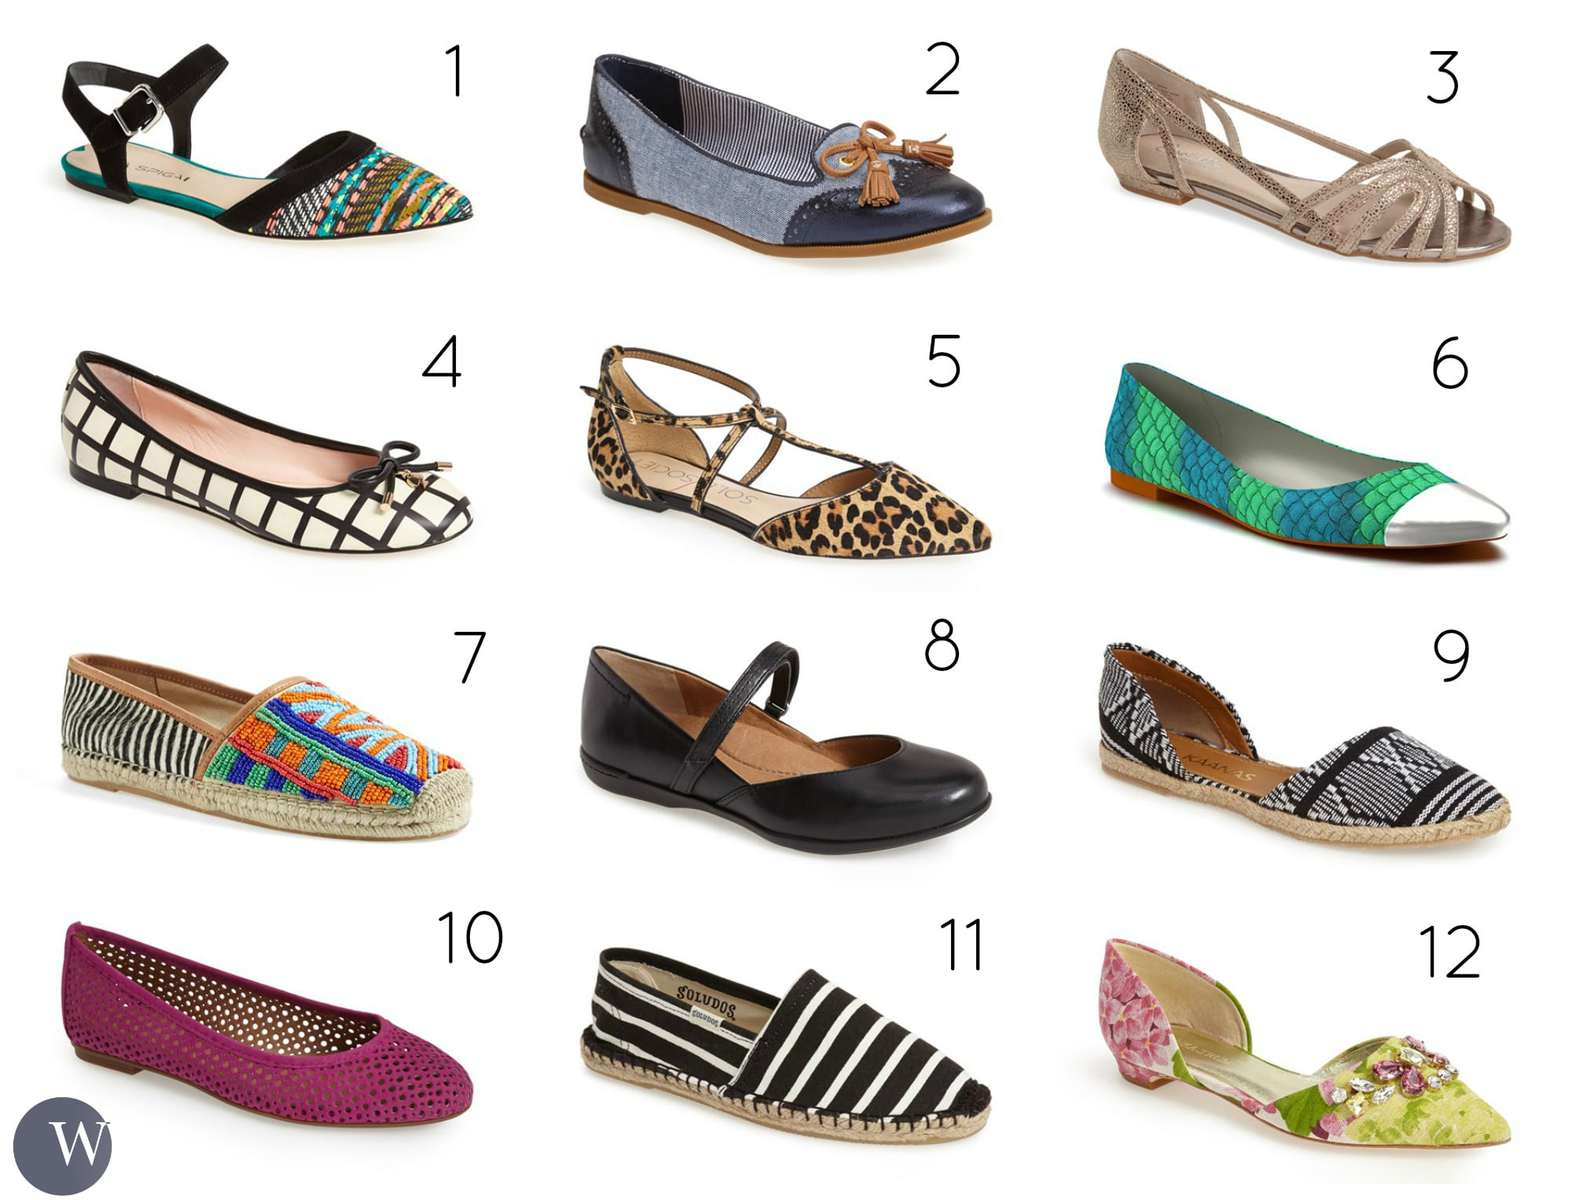 The Best Summer Flat Shoes For 2015 - Wardrobe Oxygen